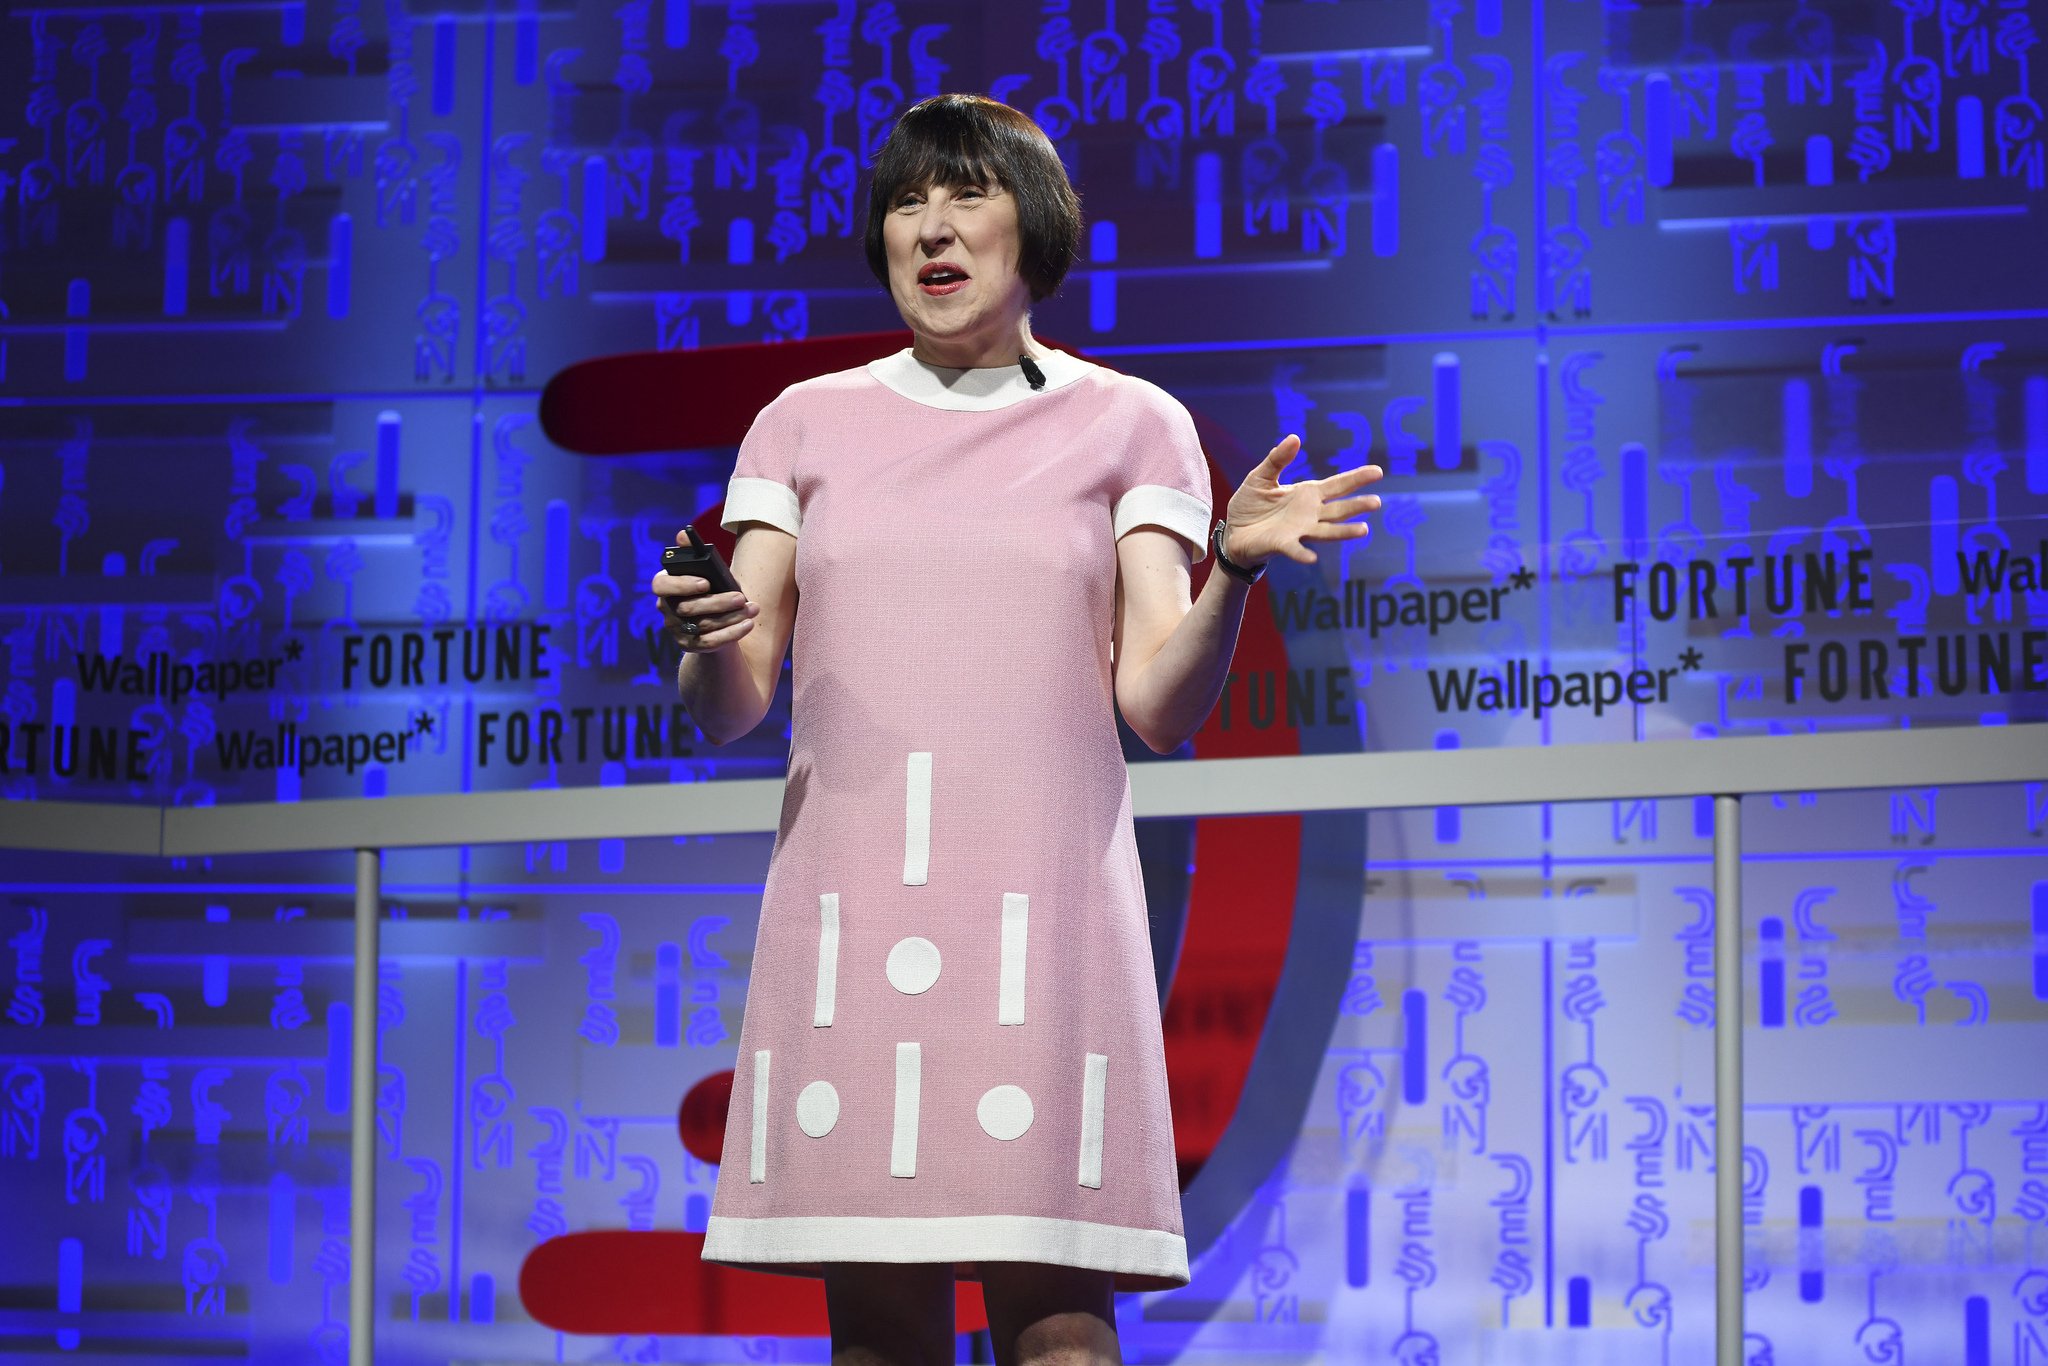 'Design as an Attitude' author Alice Rawsthorn speaking at the 2019 Fortune Brainstorm Design conference in Singapore.